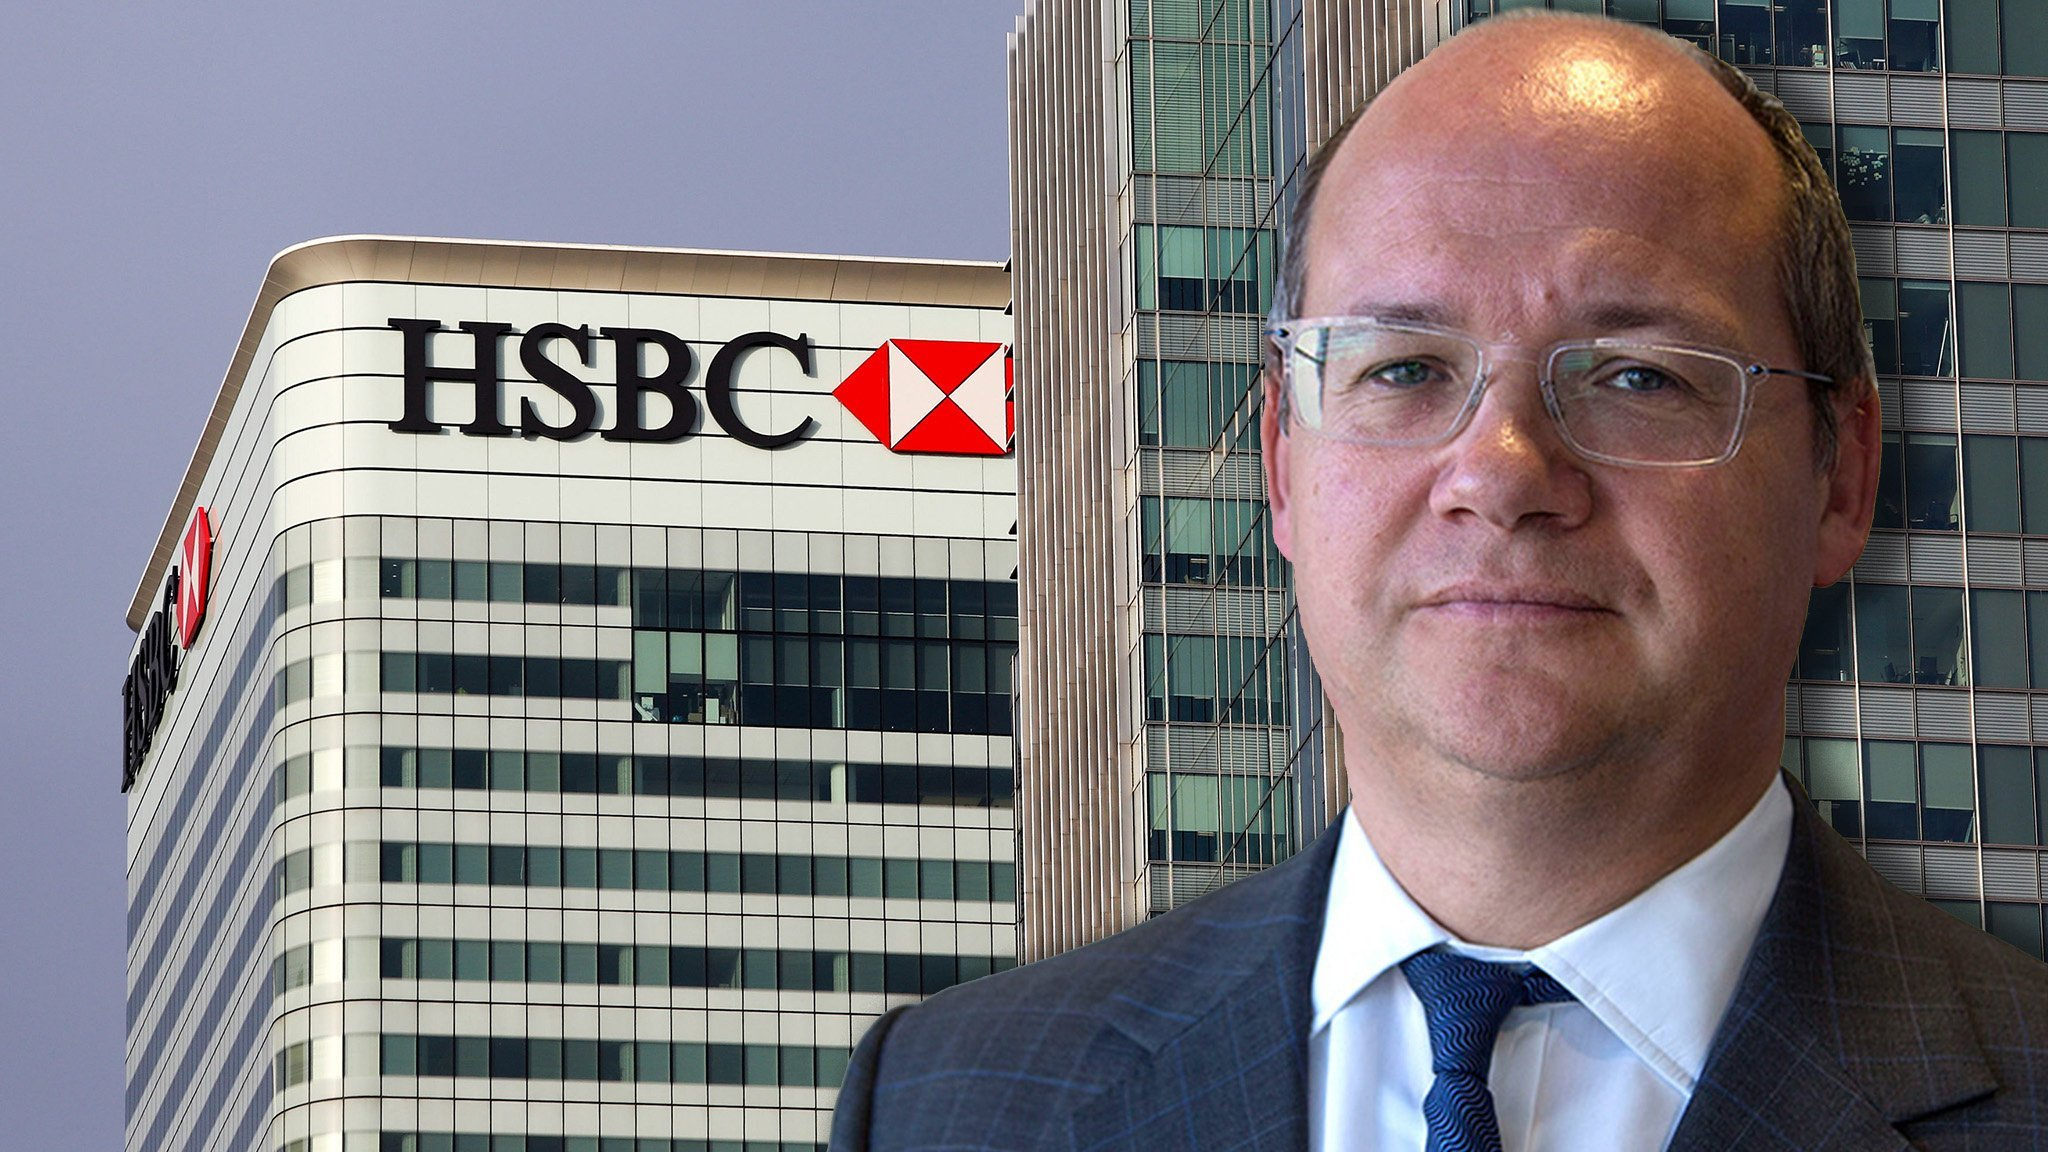 HSBC's co-head of global banking to depart after only 18 months